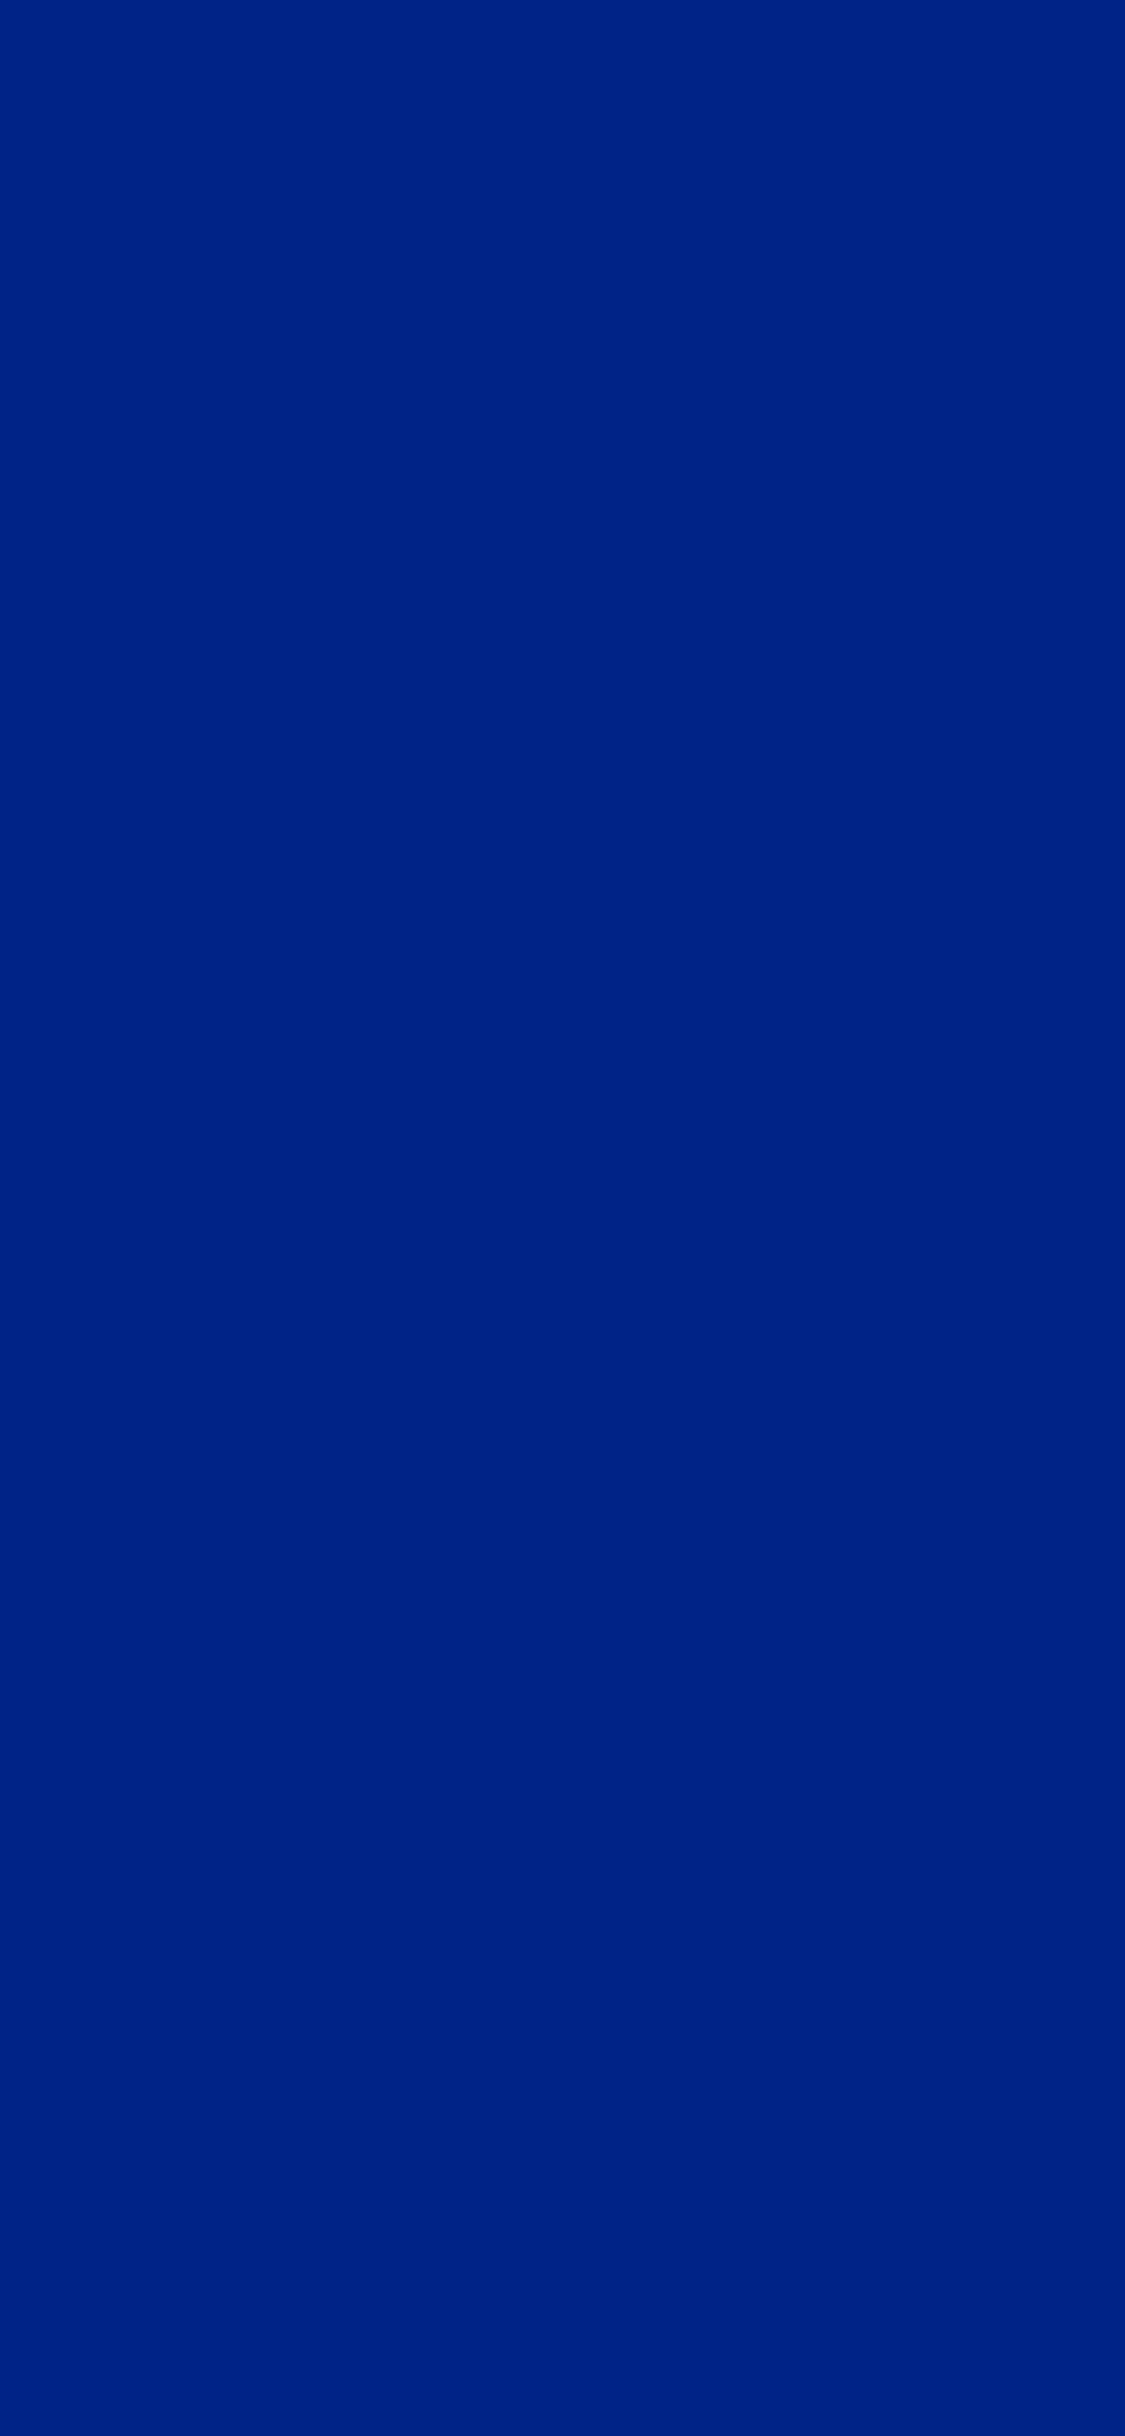 1125x2436 Resolution Blue Solid Color Background